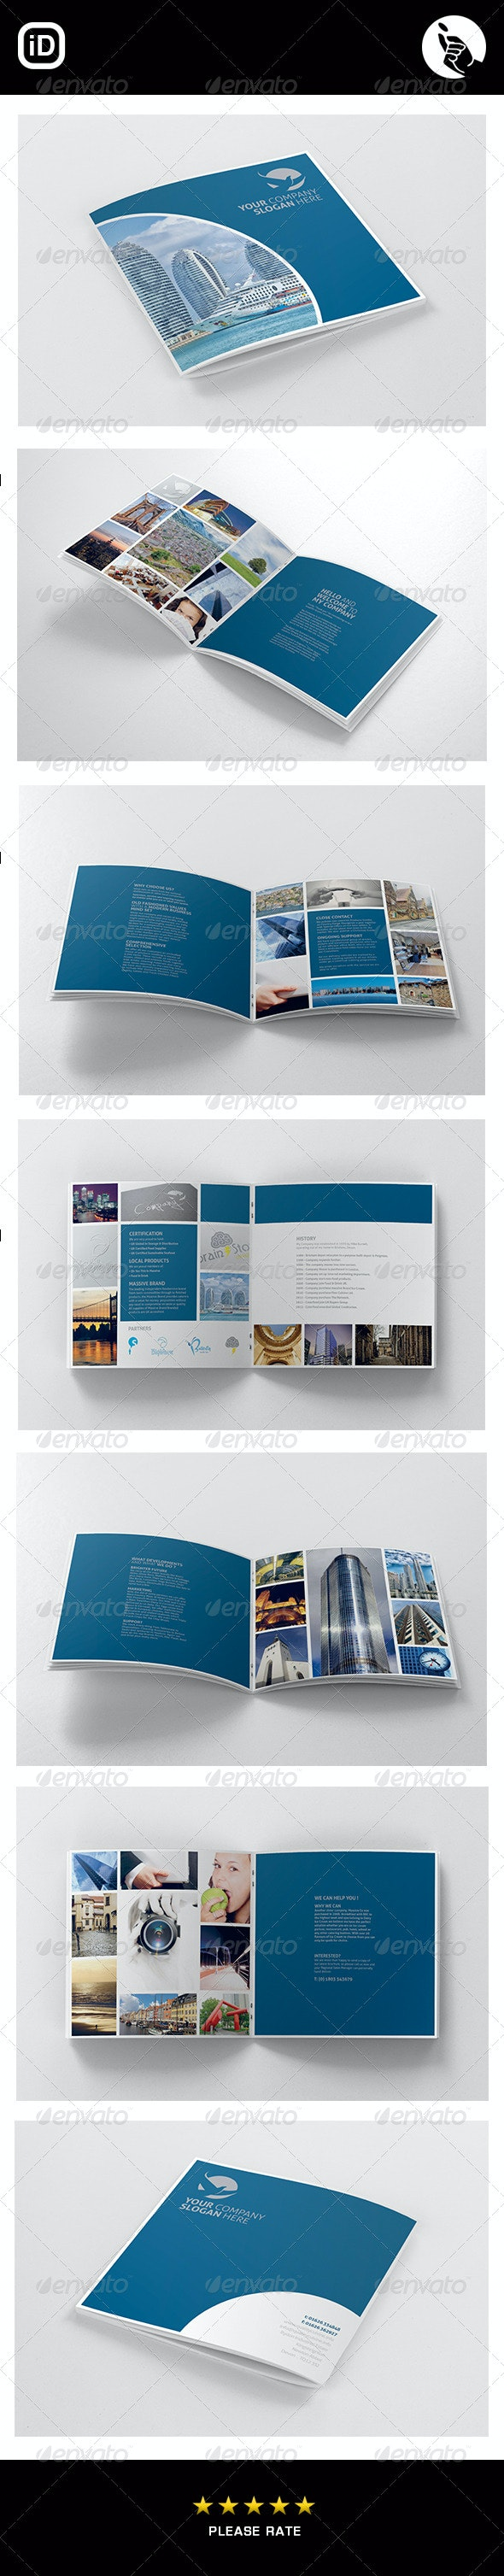 Corporate Square 12 Page Brochure - Corporate Brochures